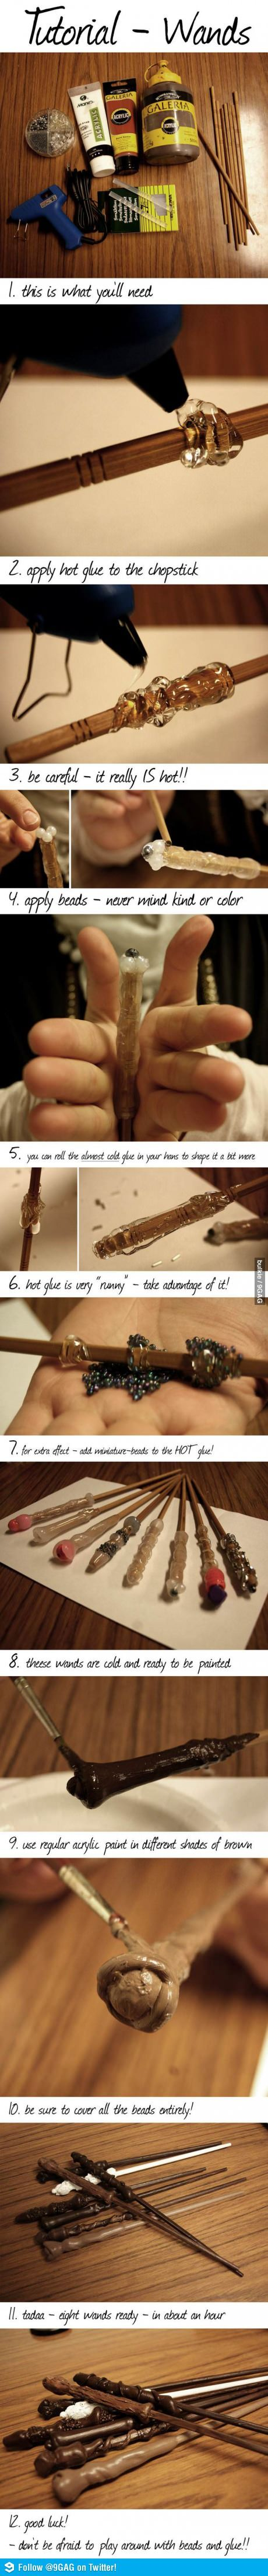 diy wands: This is probably how Ollivanders at Diagon Alley do it